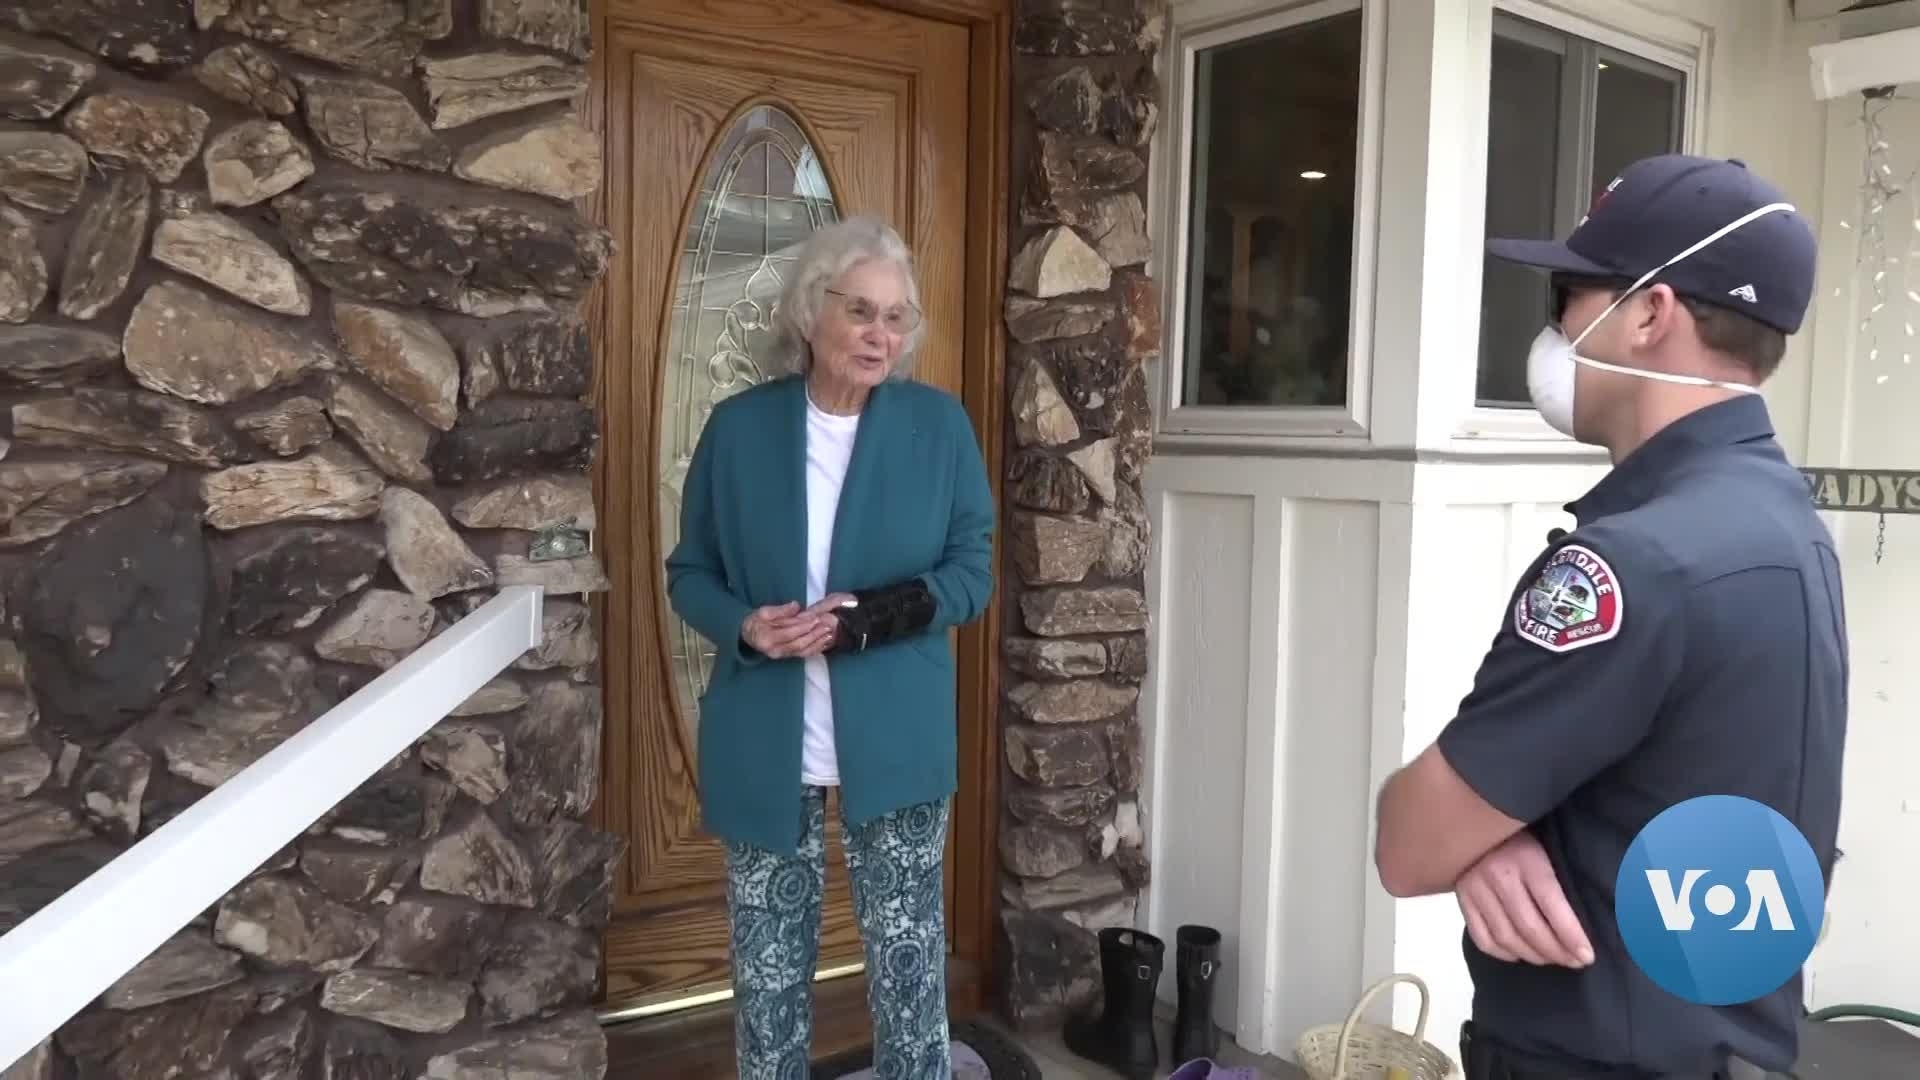 Firefighters Deliver Groceries to Elderly Amid Pandemic